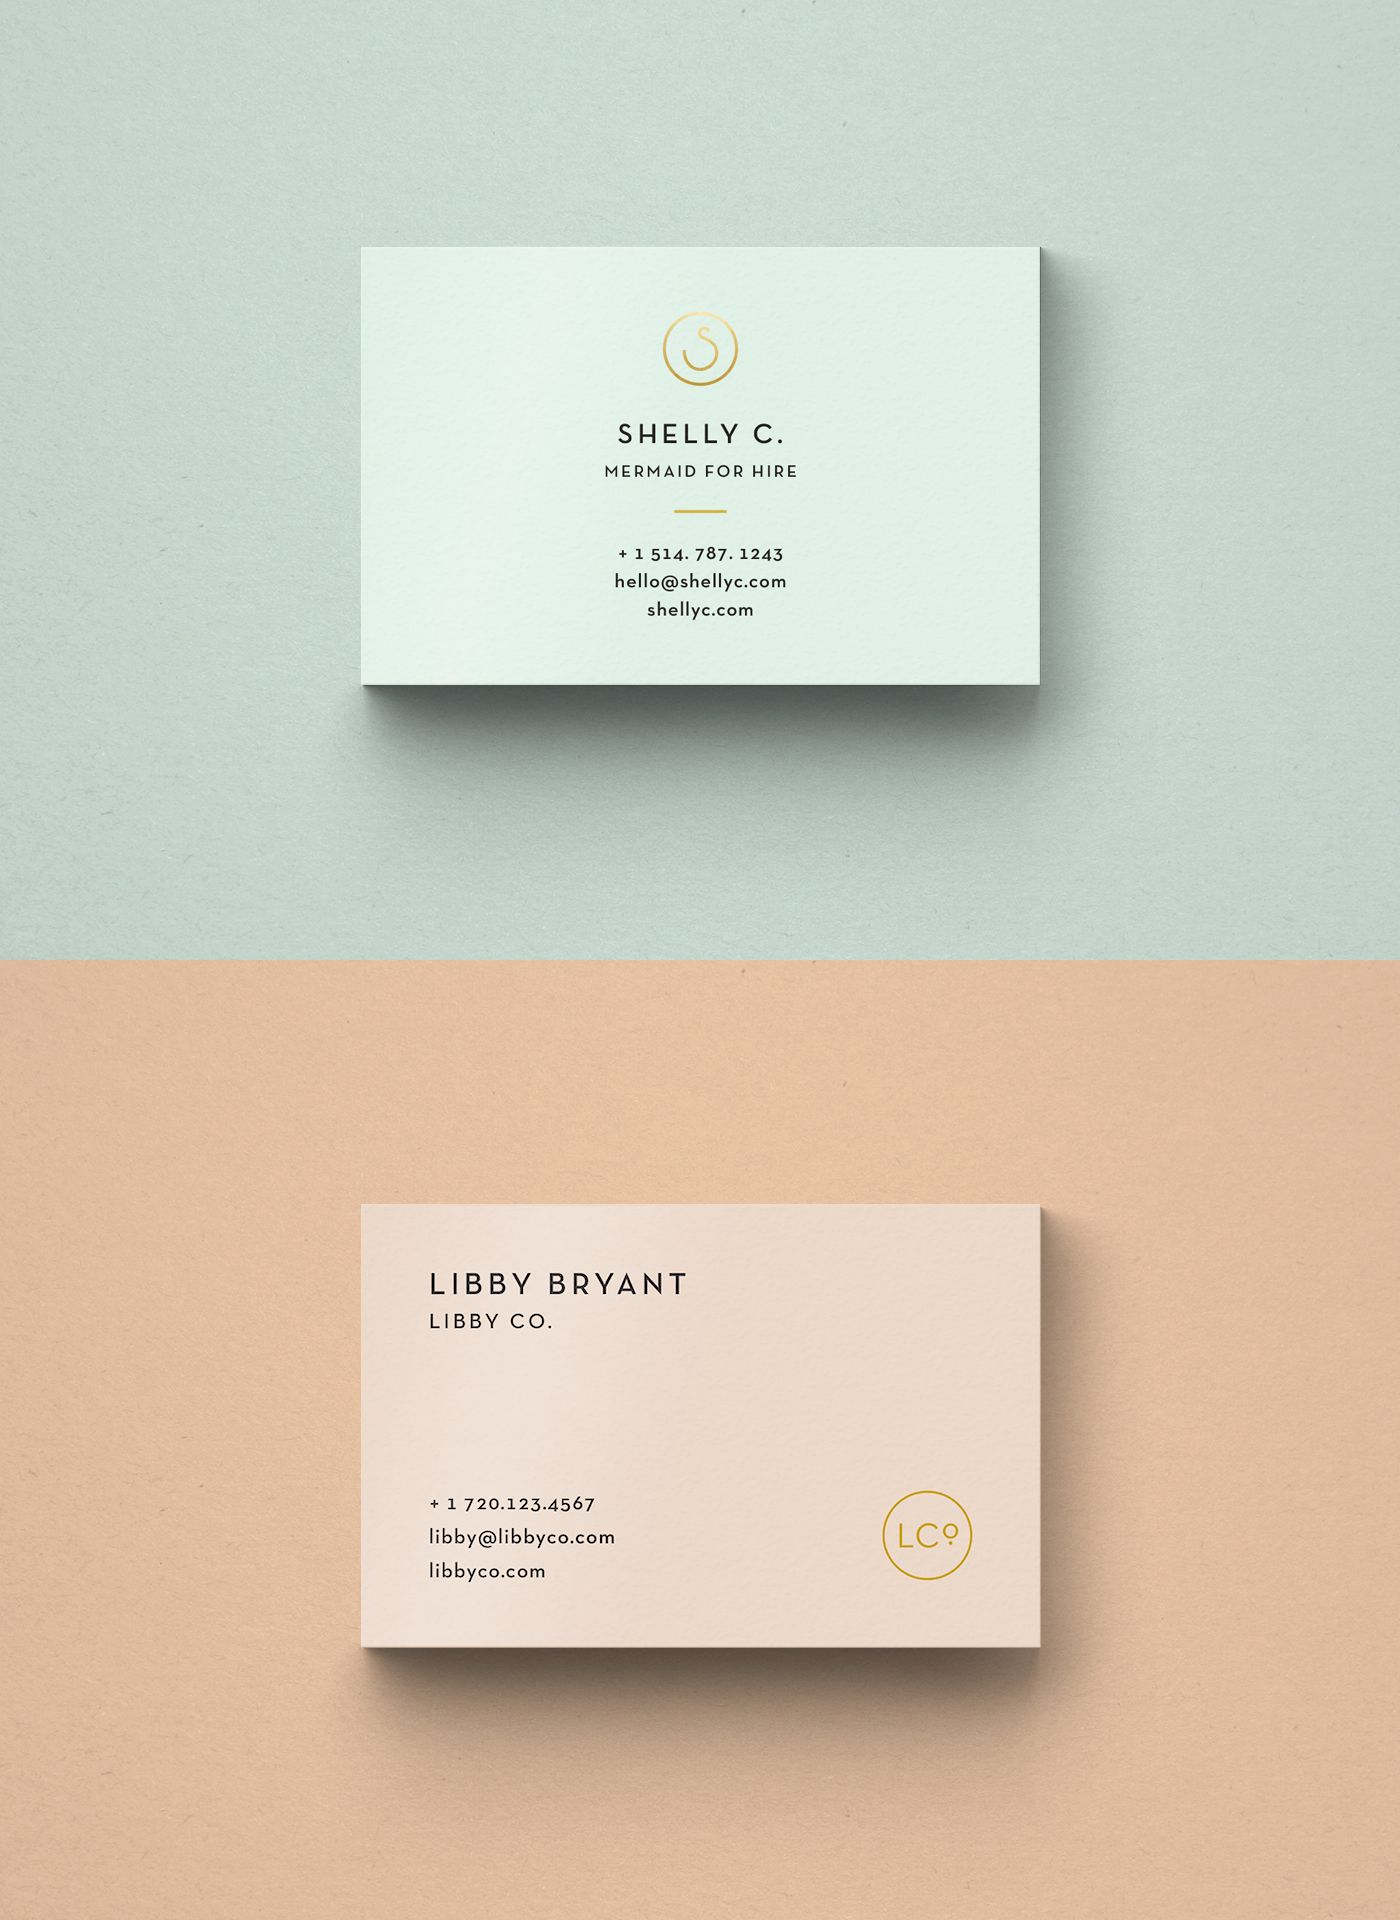 FREE BUSINESS CARD TEMPLATES | Card templates, Business cards and ...